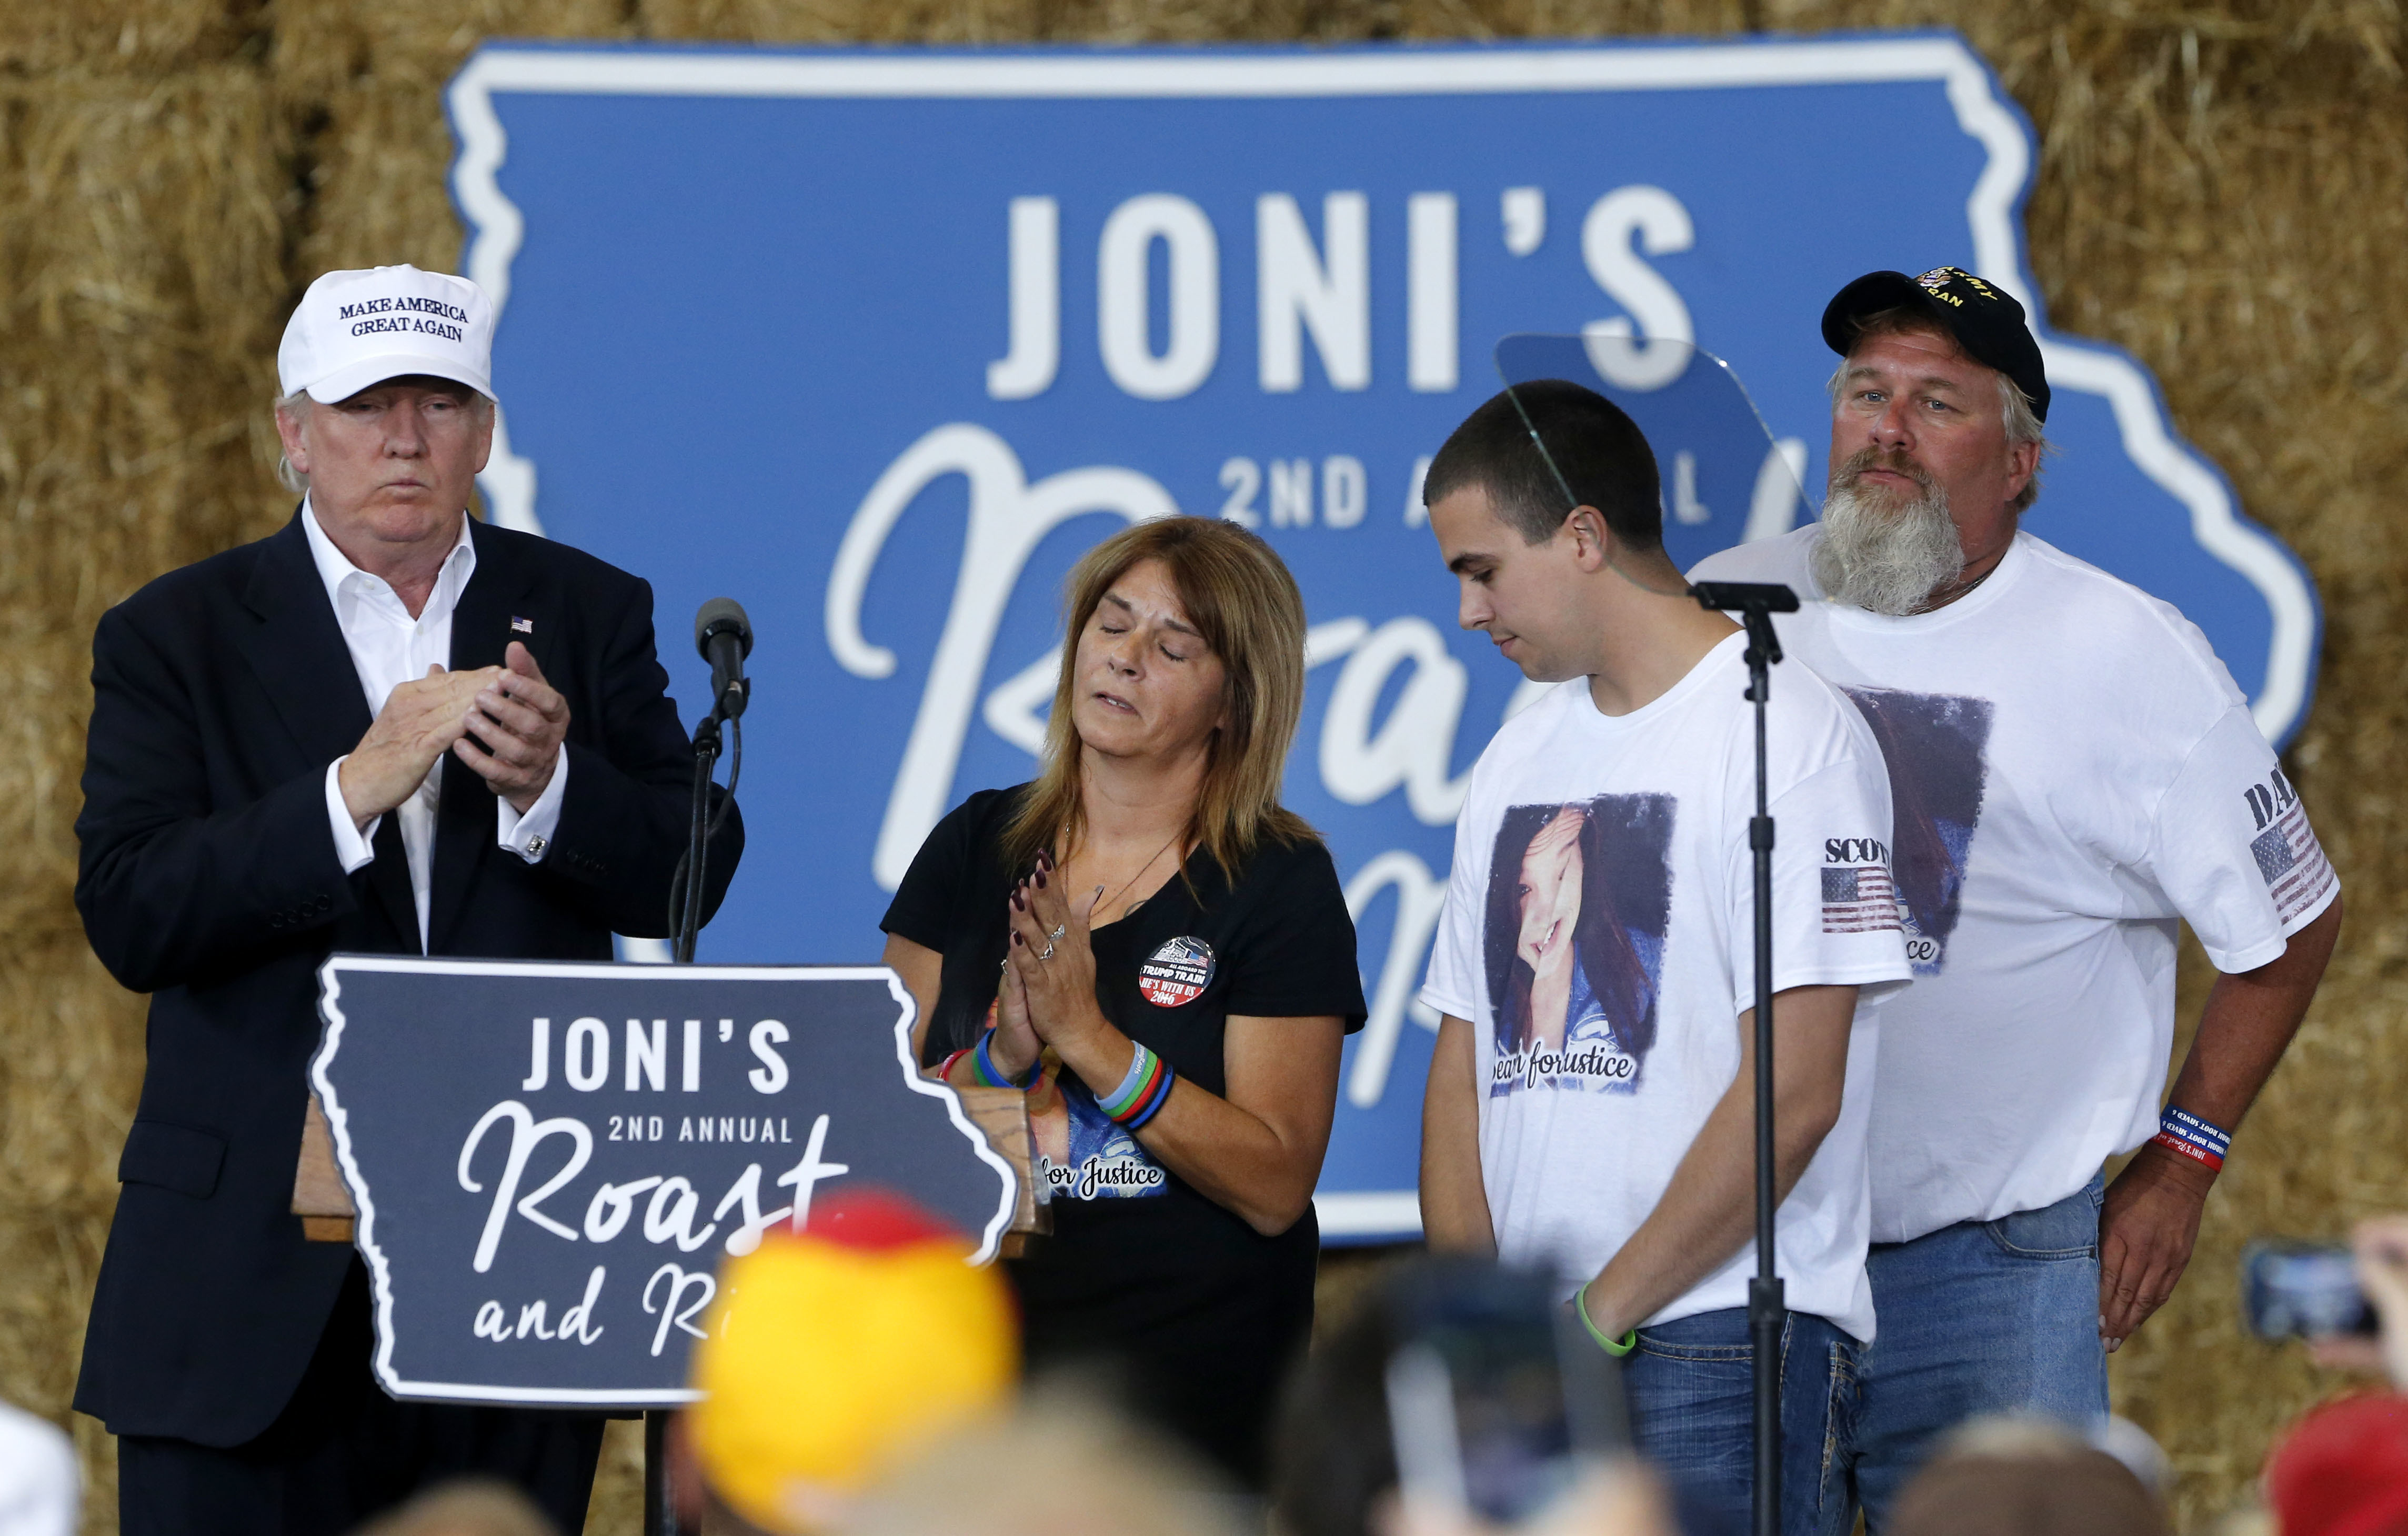 Republican presidential candidate Donald Trump shares the stage with the family of Sarah Root at a campaign event at the Iowa State Fairgrounds in Des Moines, Aug. 27, 2016. Root was killed this year after her car was hit by another. The driver, who ...